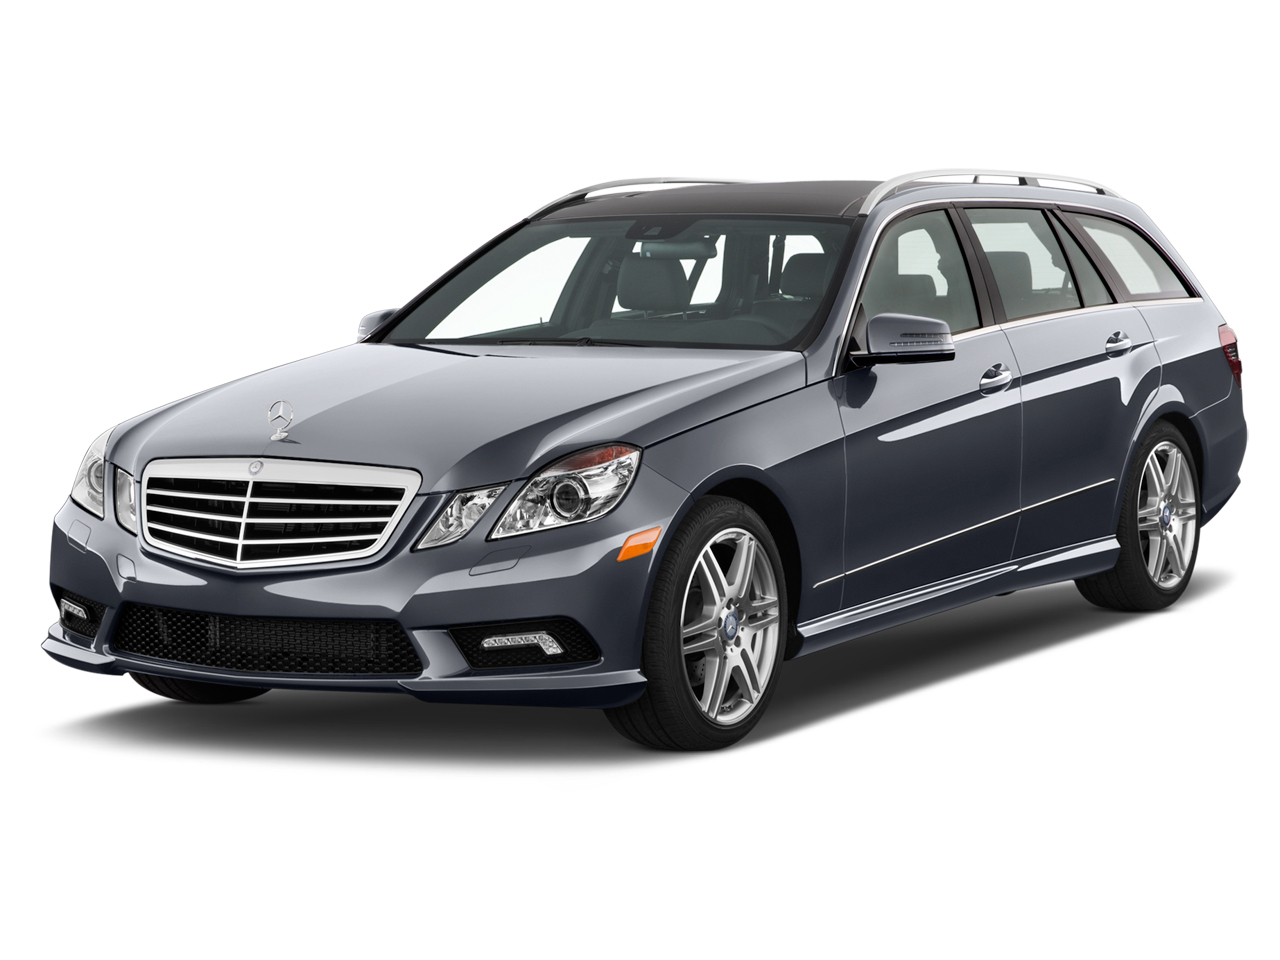 2012 mercedes benz e class features review the car. Black Bedroom Furniture Sets. Home Design Ideas